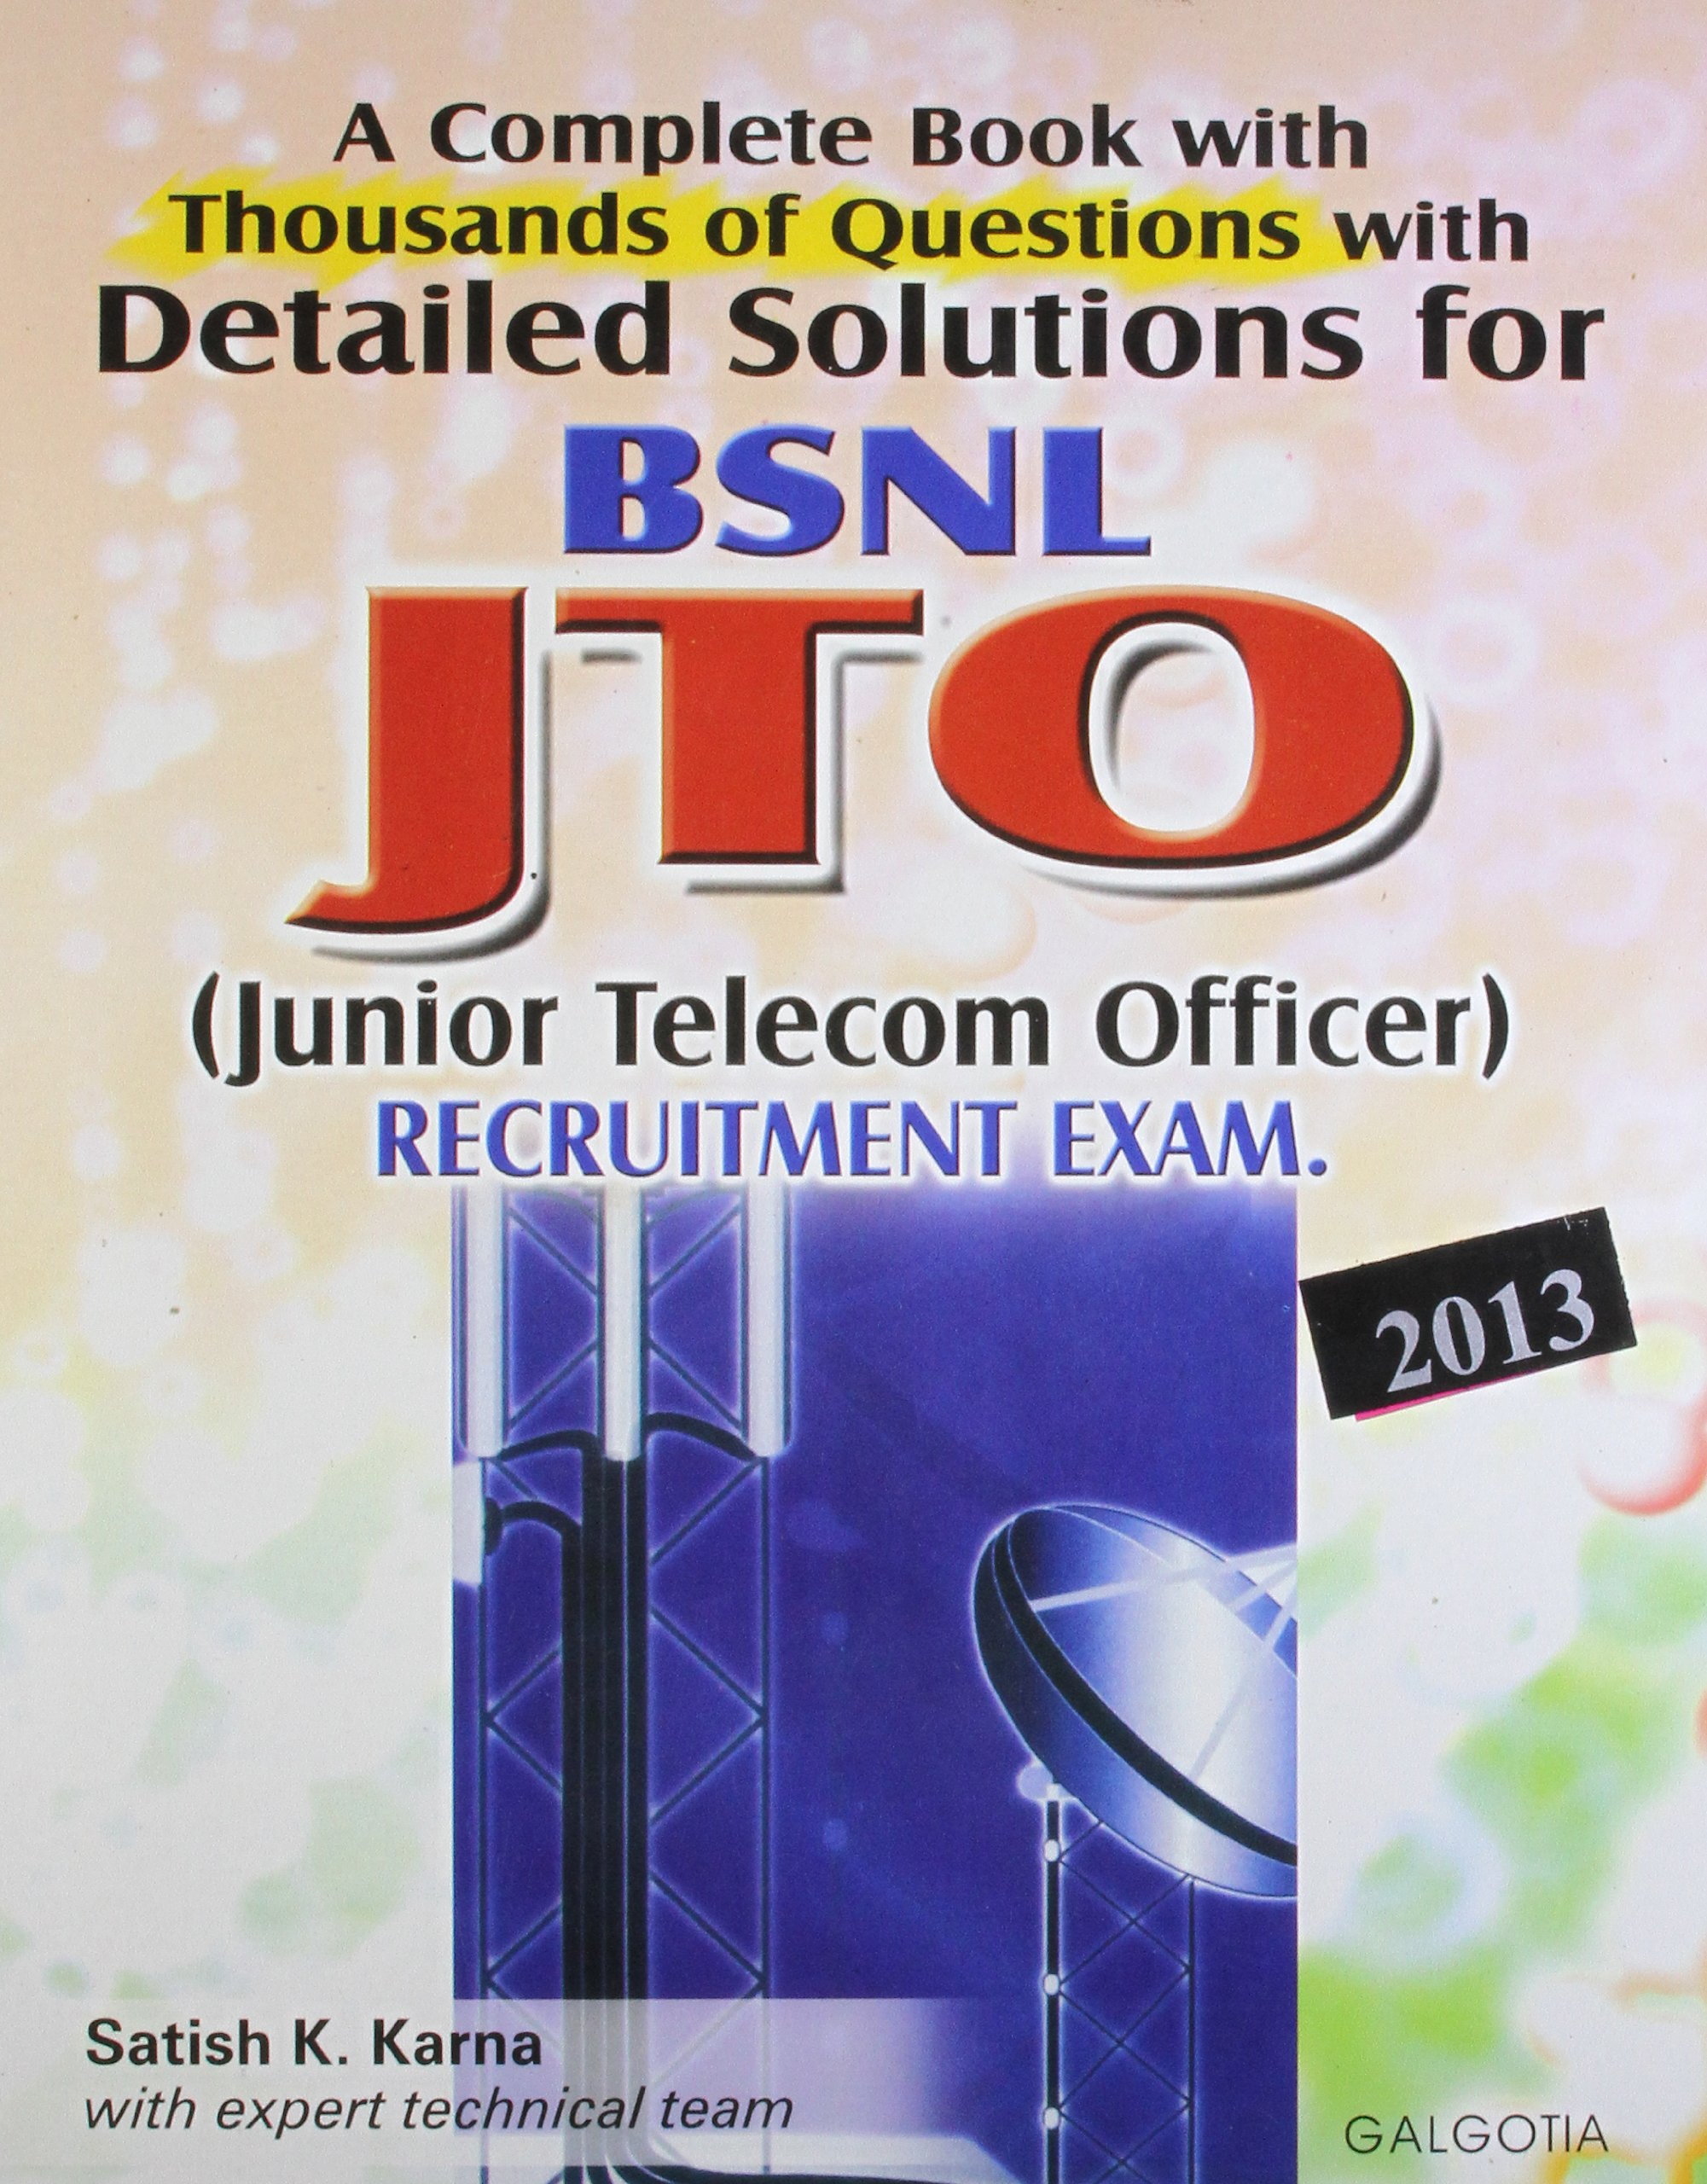 Buy BSNL JTO Recruitment Exam Book Online at Low Prices in India | BSNL JTO  Recruitment Exam Reviews & Ratings - Amazon.in